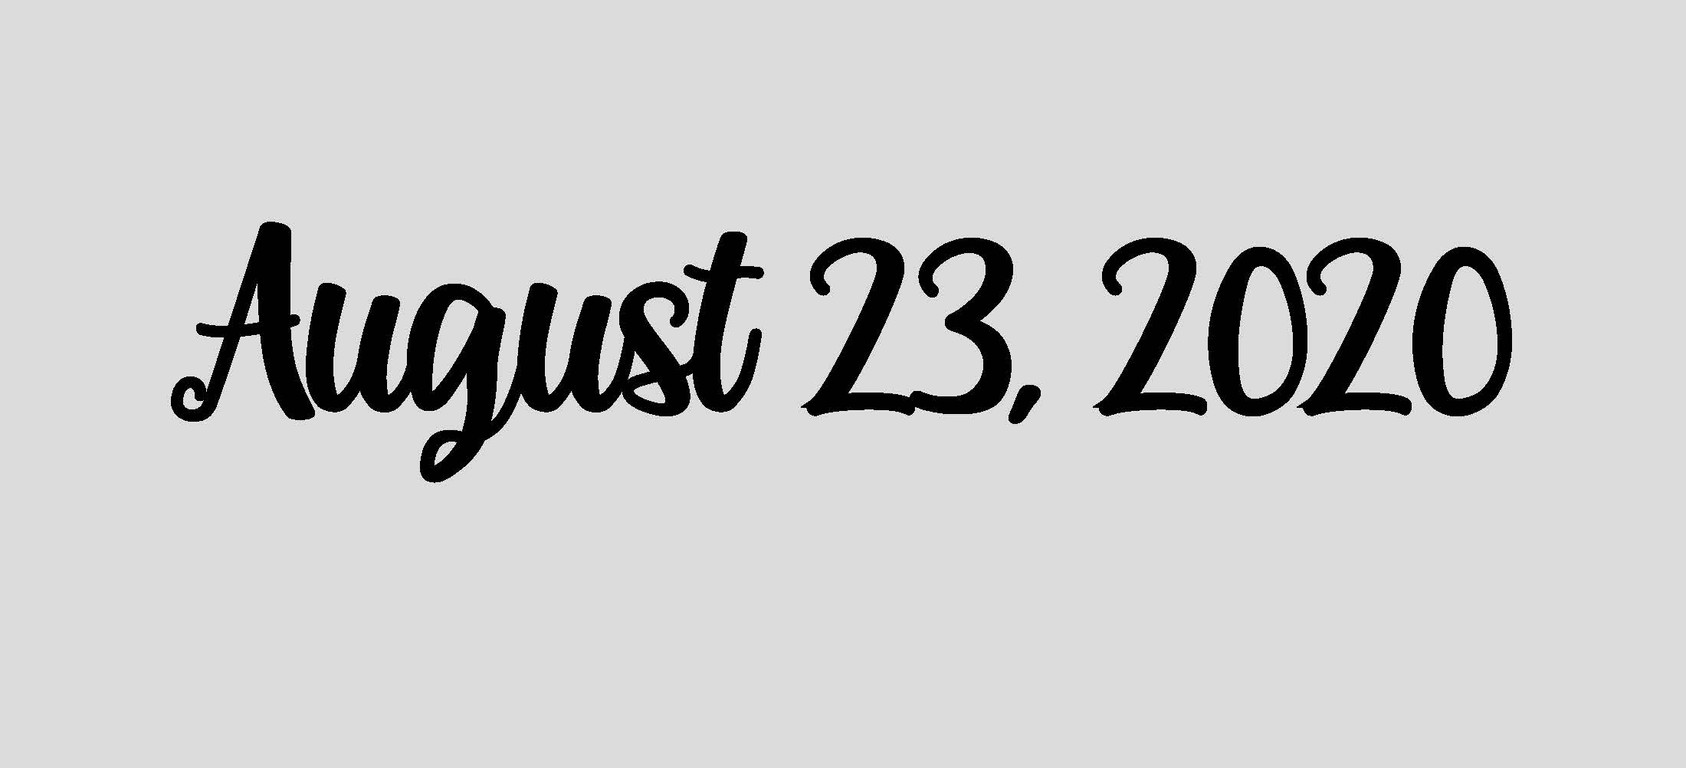 August 23, 2020